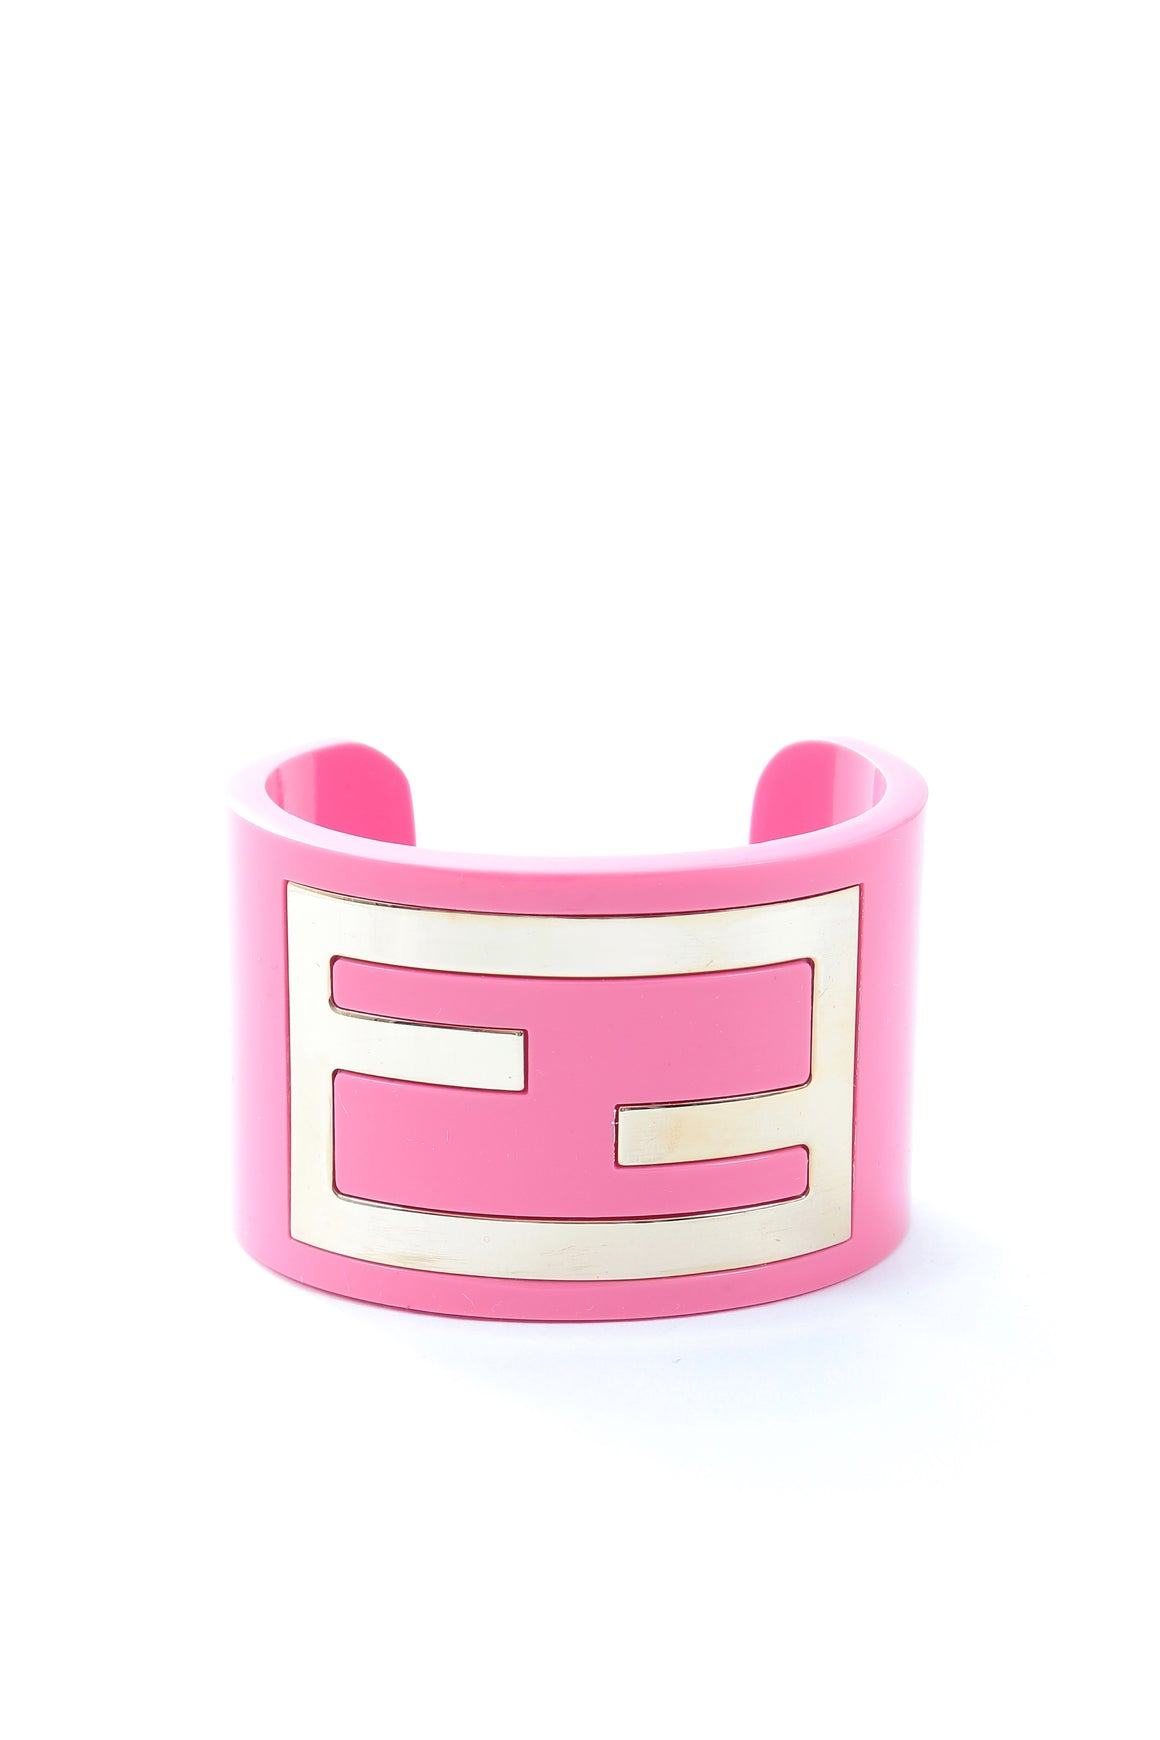 Fendi The Fendista Plexiglass Bracelet